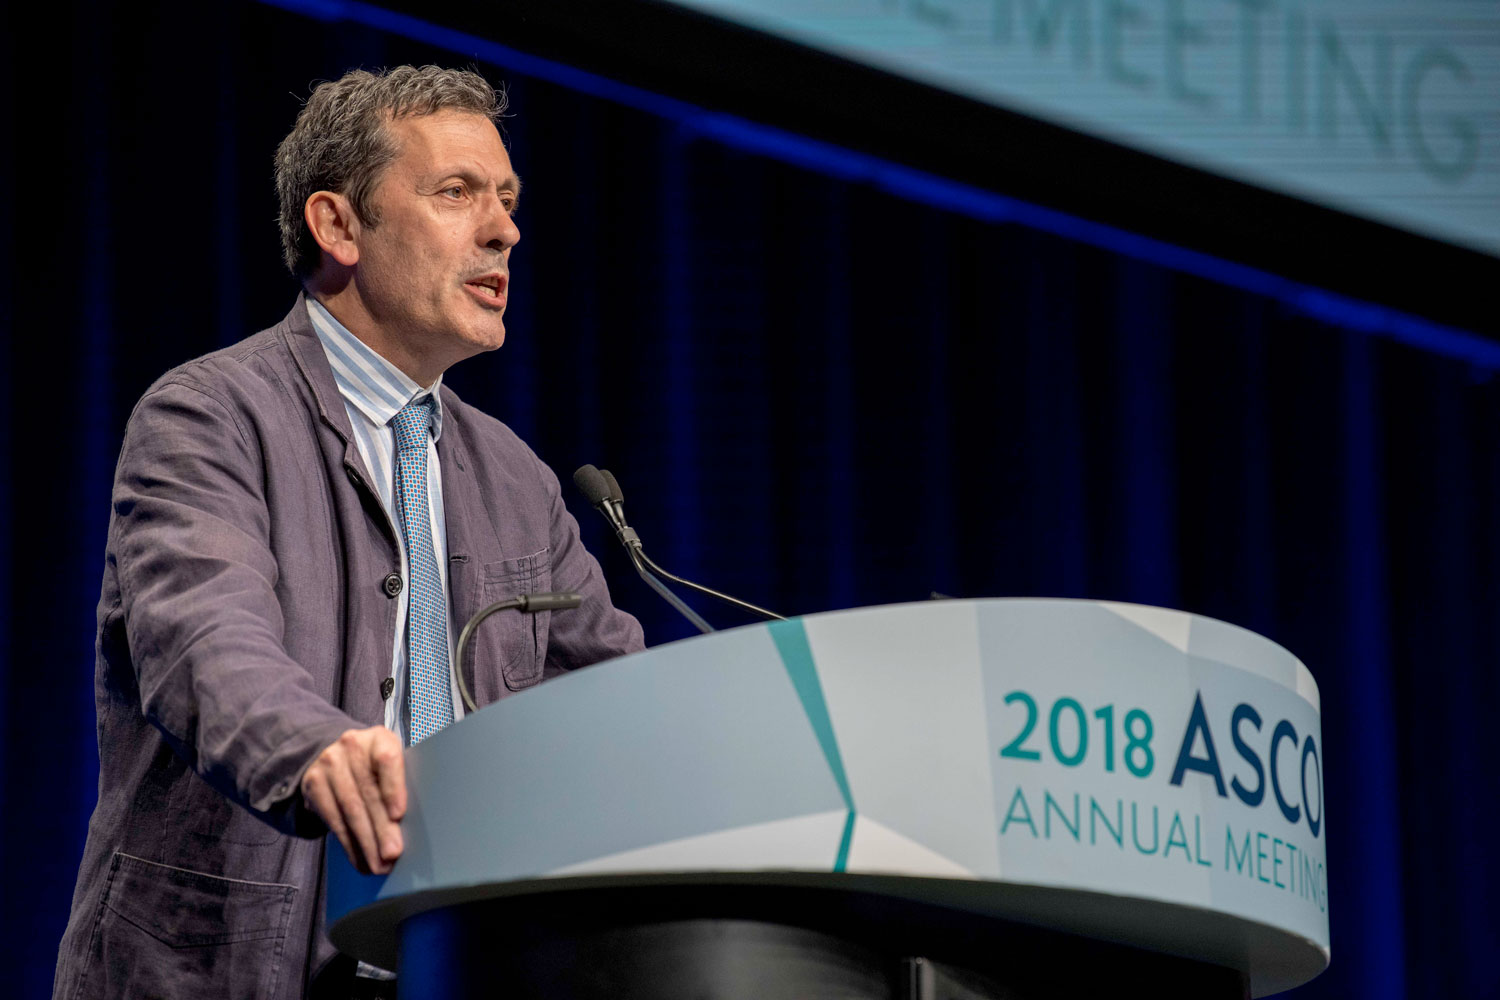 Luis Paz-Ares speaking at ASCO18